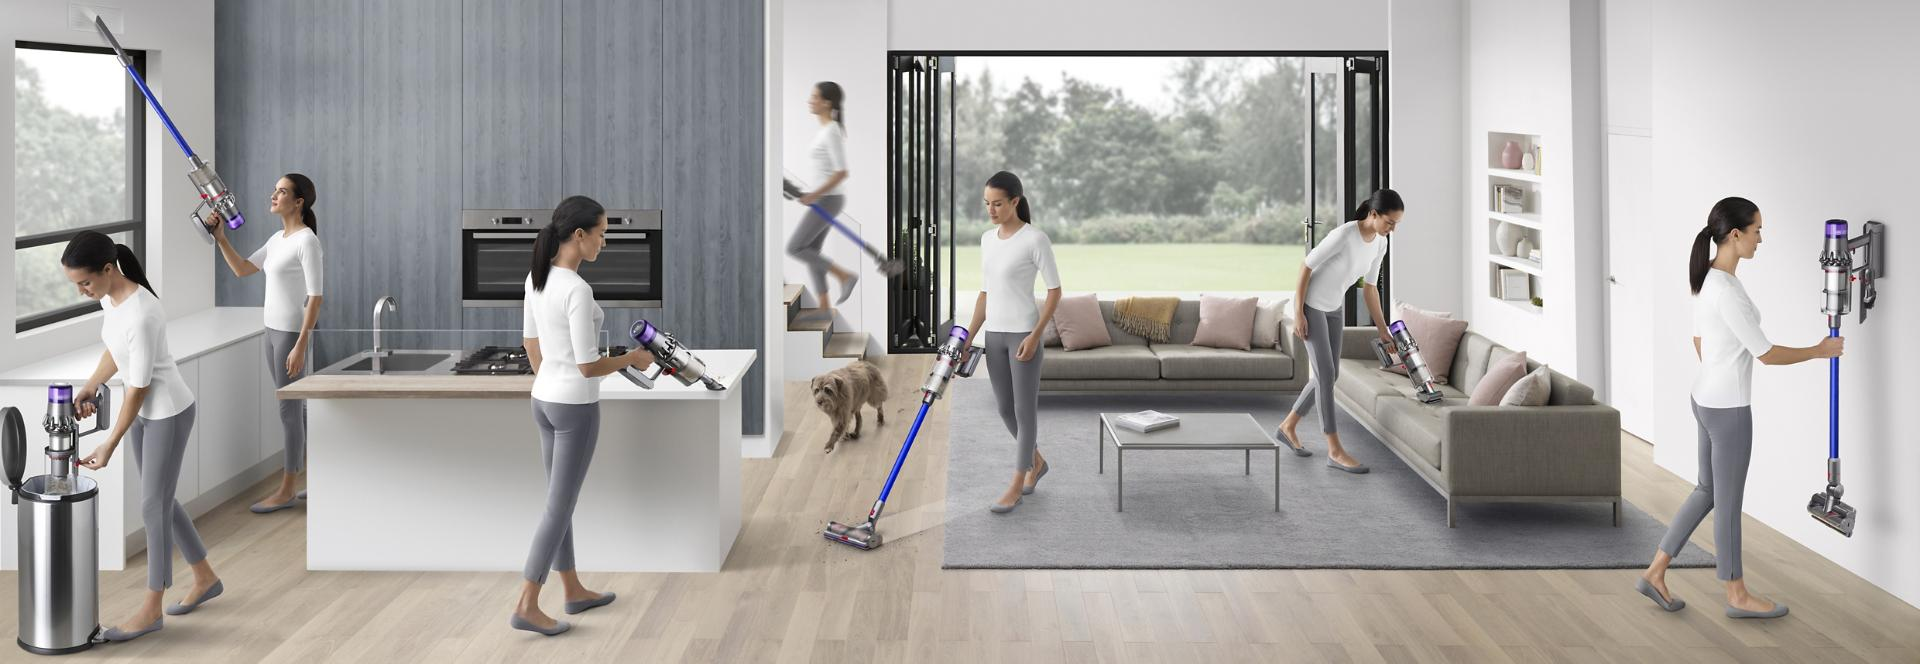 Woman vacuuming in different places around a home